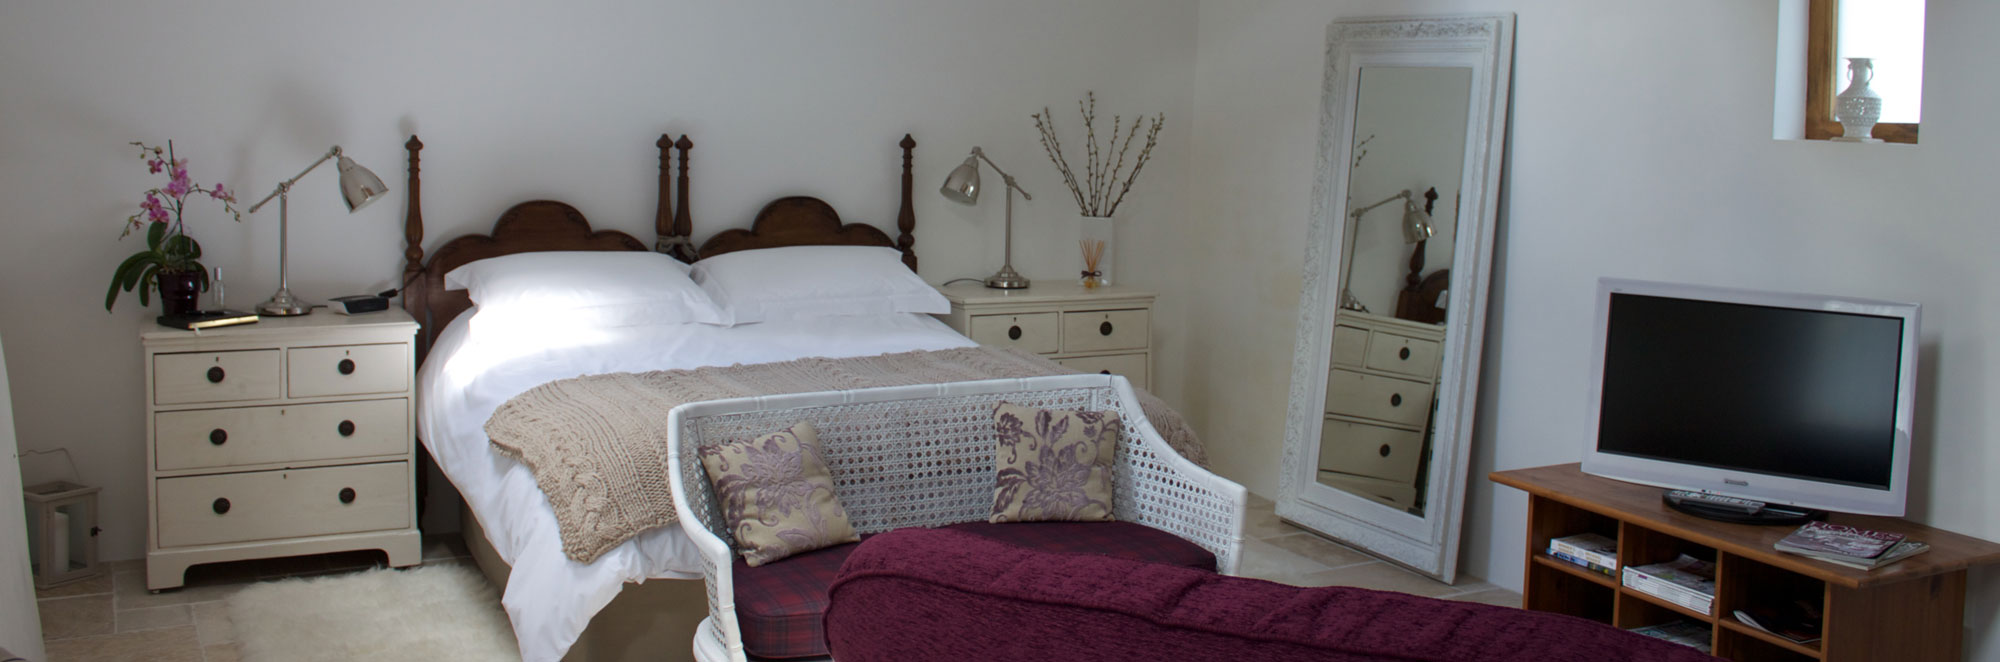 Bed And Breakfast Petersfield Hampshire Self Contained Converted Dairy Barn Available For Bed And Breakfast